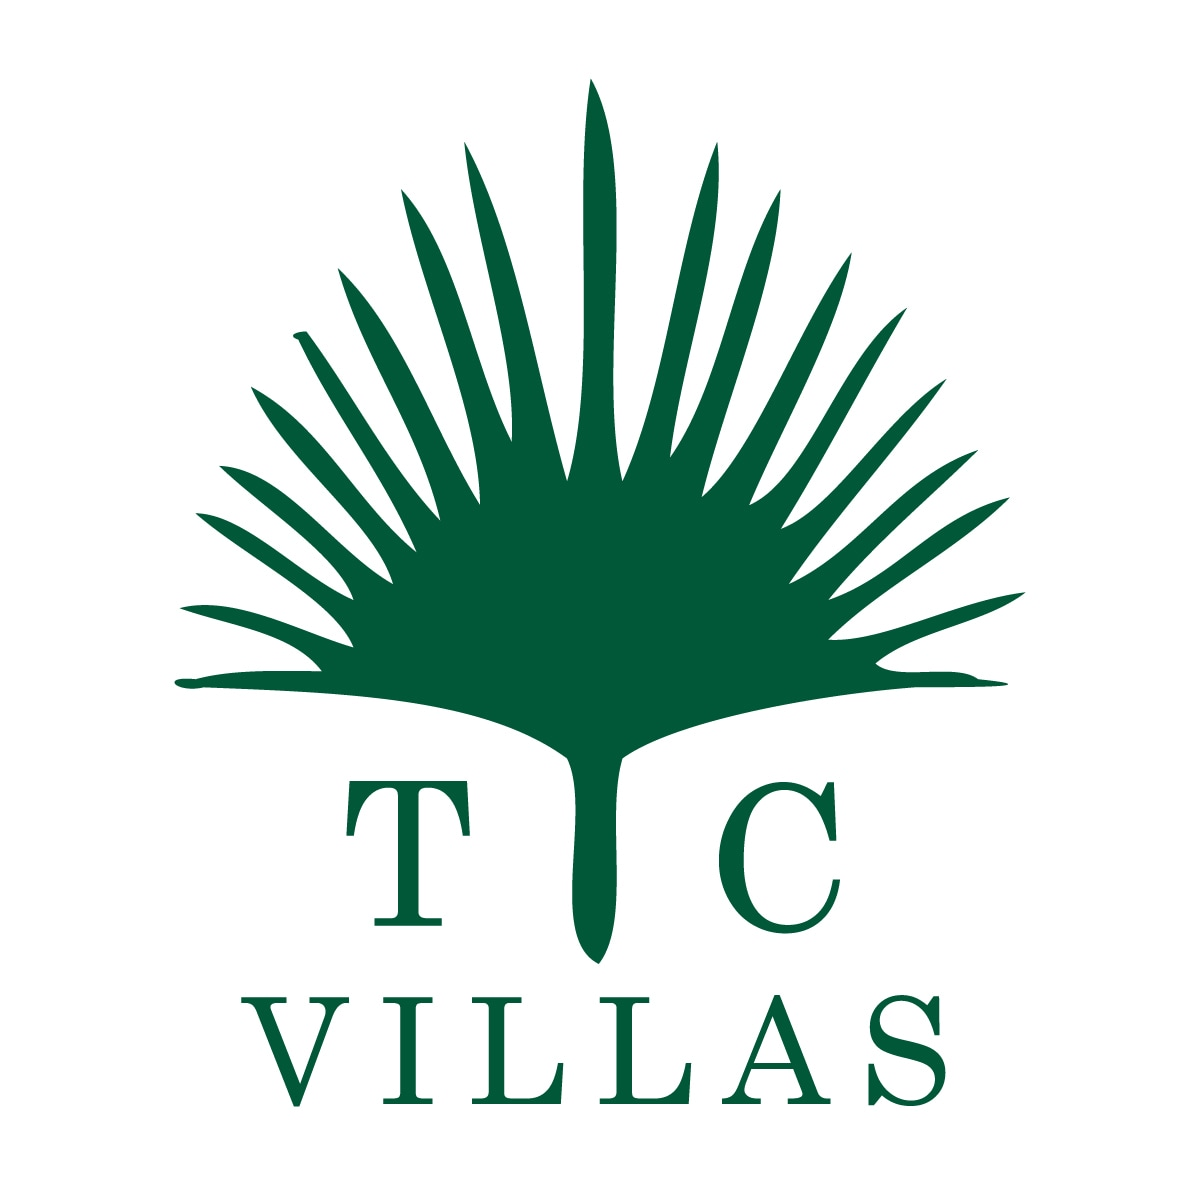 TC Villas From Providenciales and West Caicos, Turks and Caicos Islands